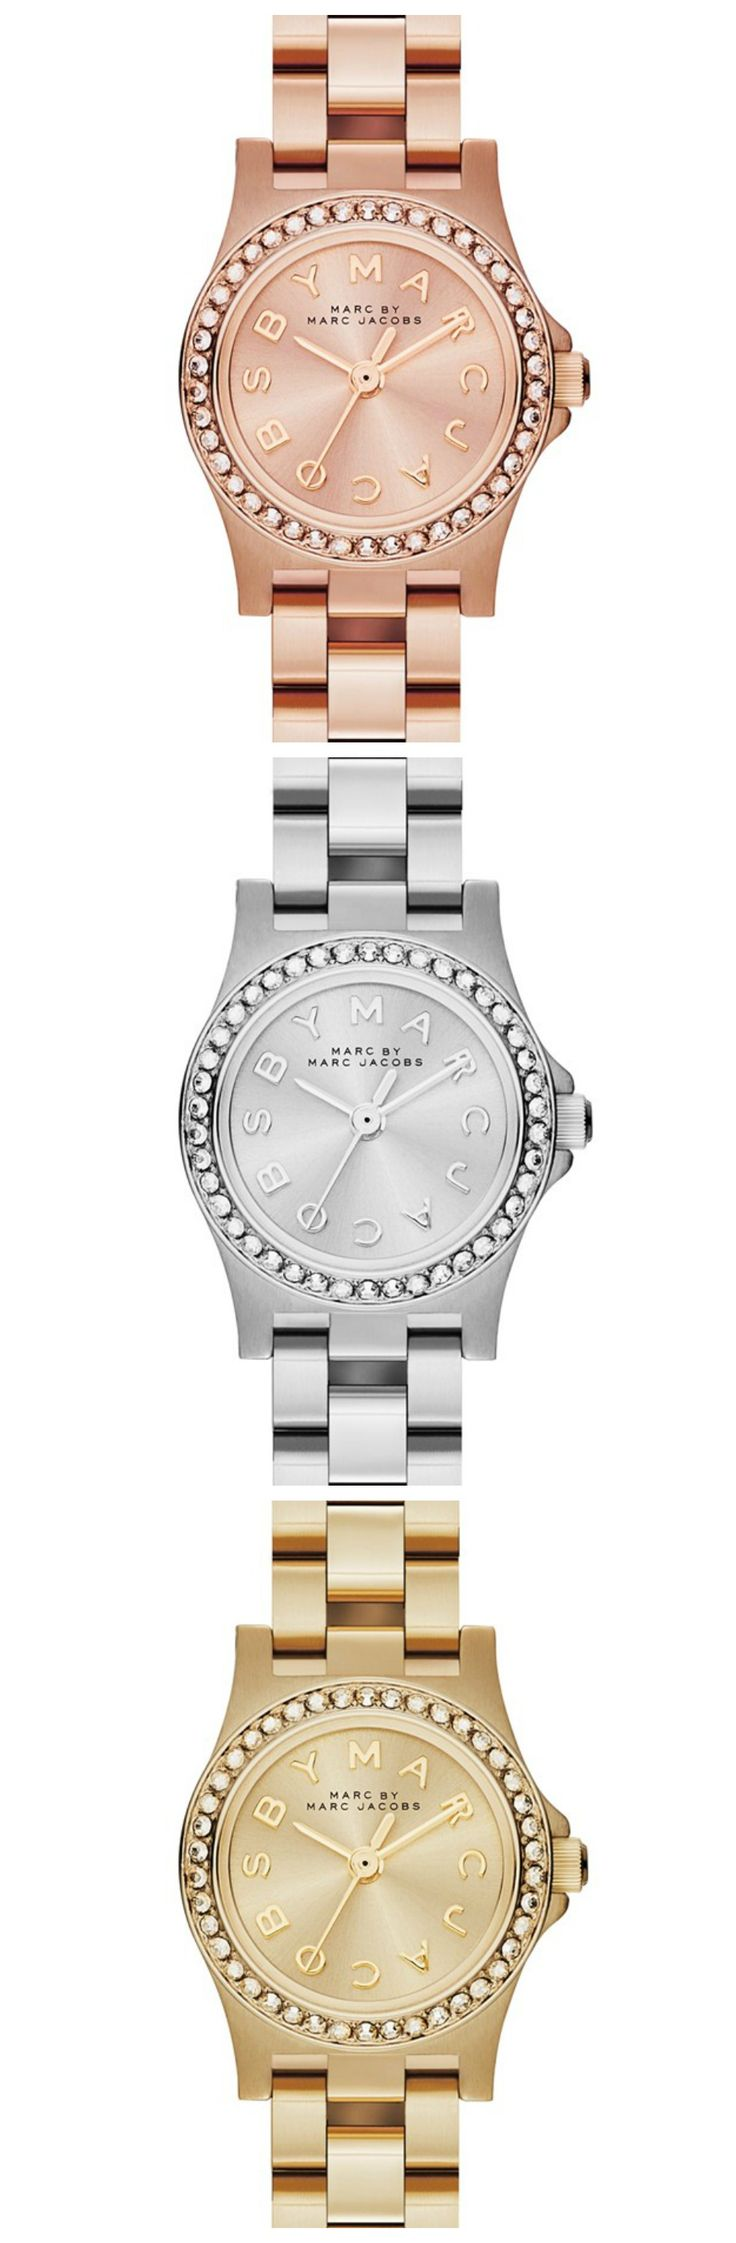 Shiny, Marc by Marc Jacobs watches.